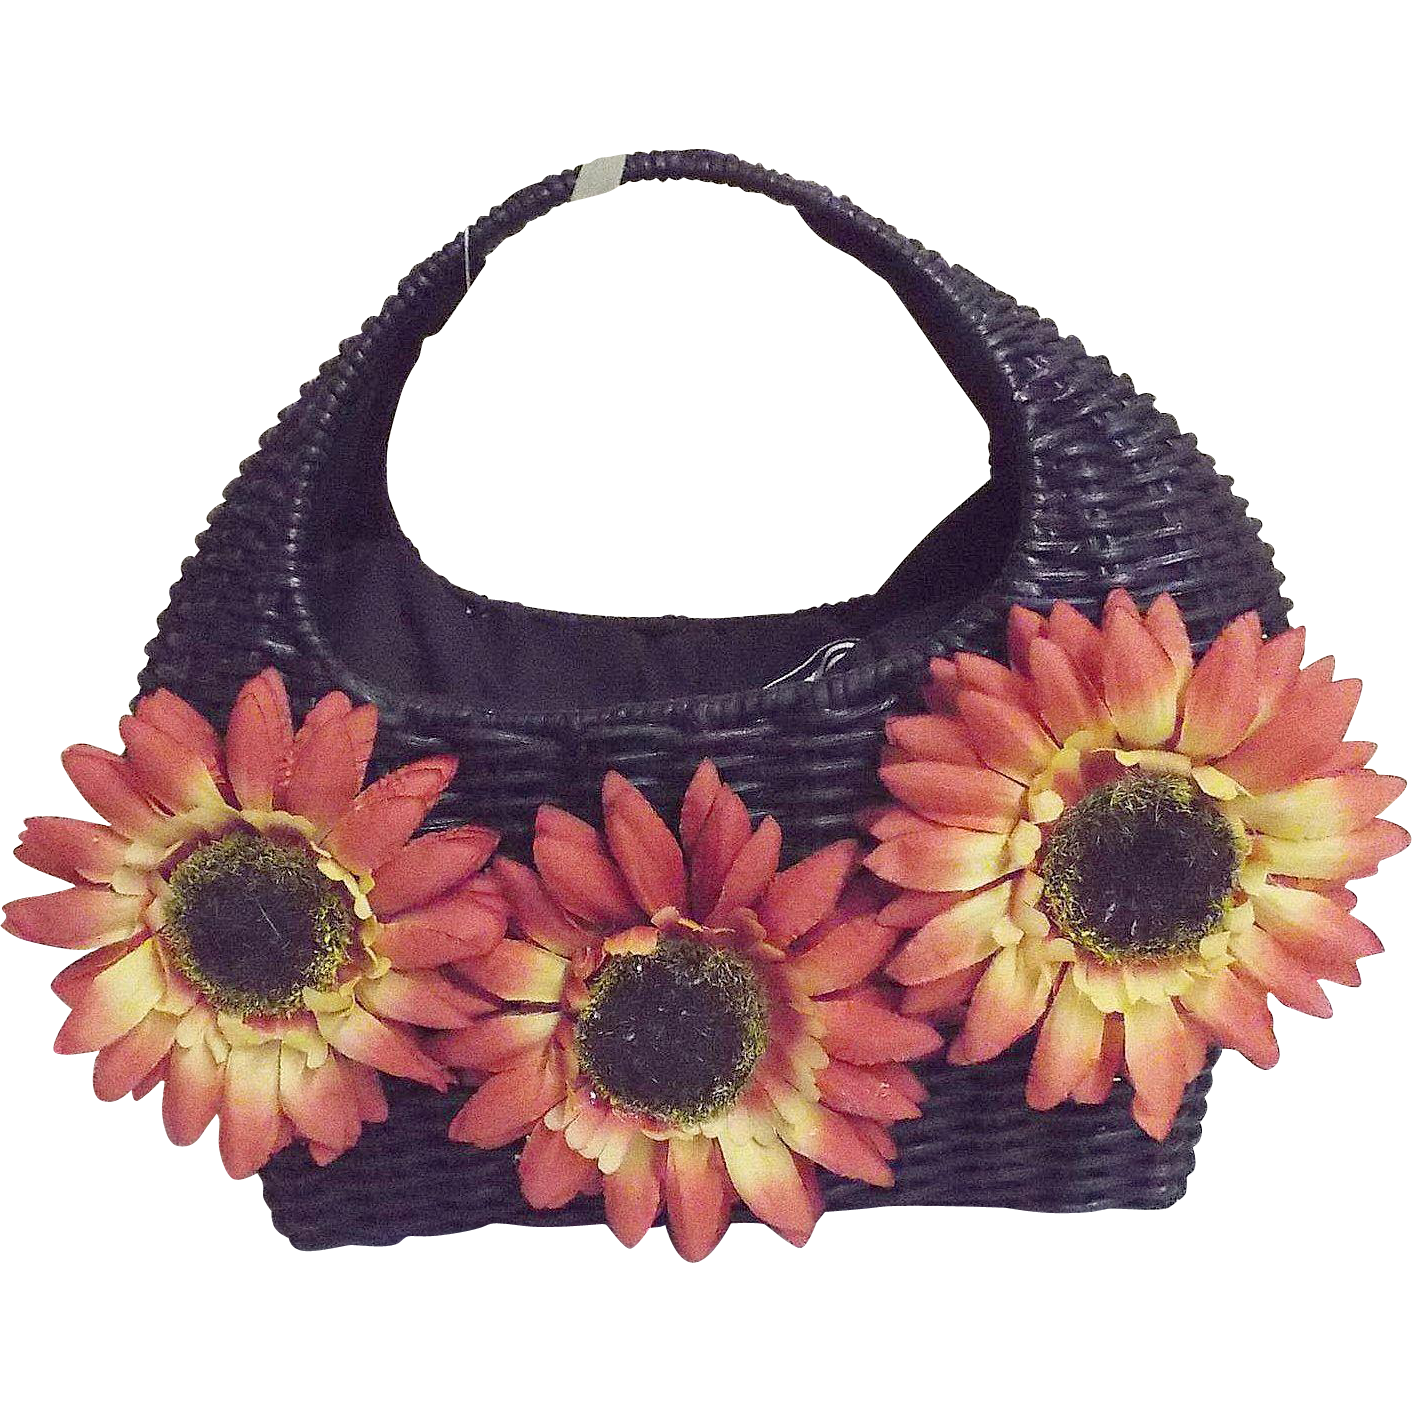 Black Straw / Ratan Handbag With Sunflowers..Double Cotton Drawstring Lining...NOS